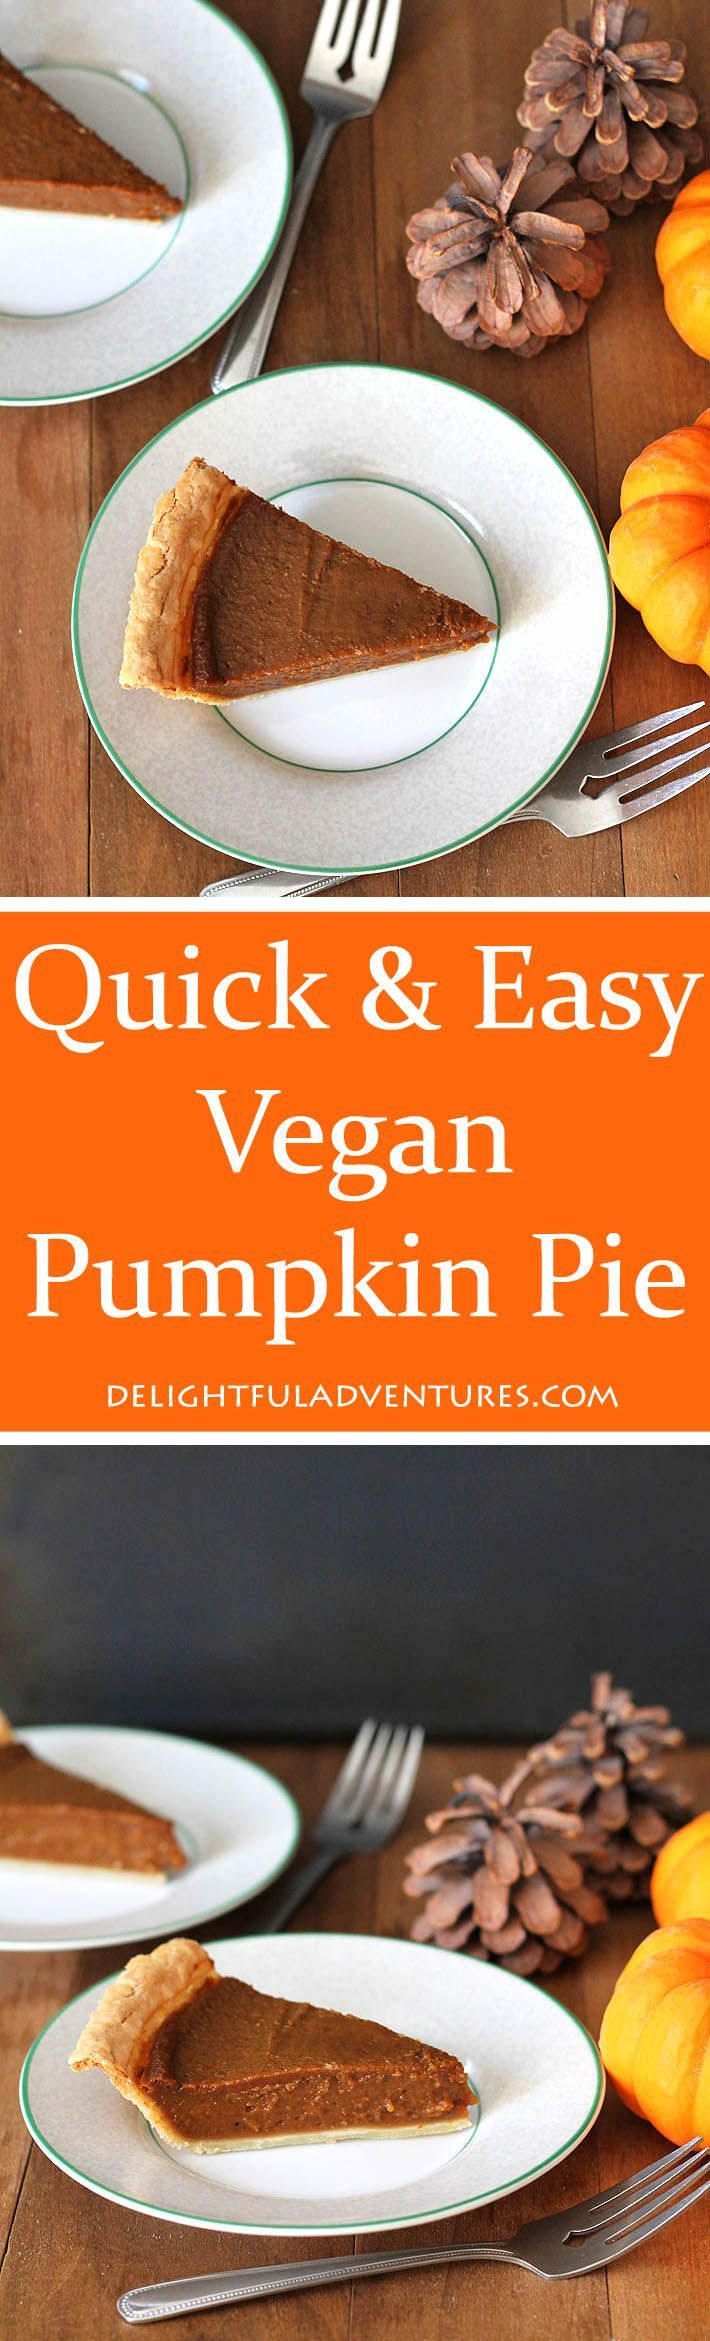 This Quick and Easy Vegan Pumpkin Pie recipe will save you lots of time so you can move on to other things when cooking multiple dishes during the holidays! via @delighfuladv #pumpkinpie #vegan #vegandessert #veganpie